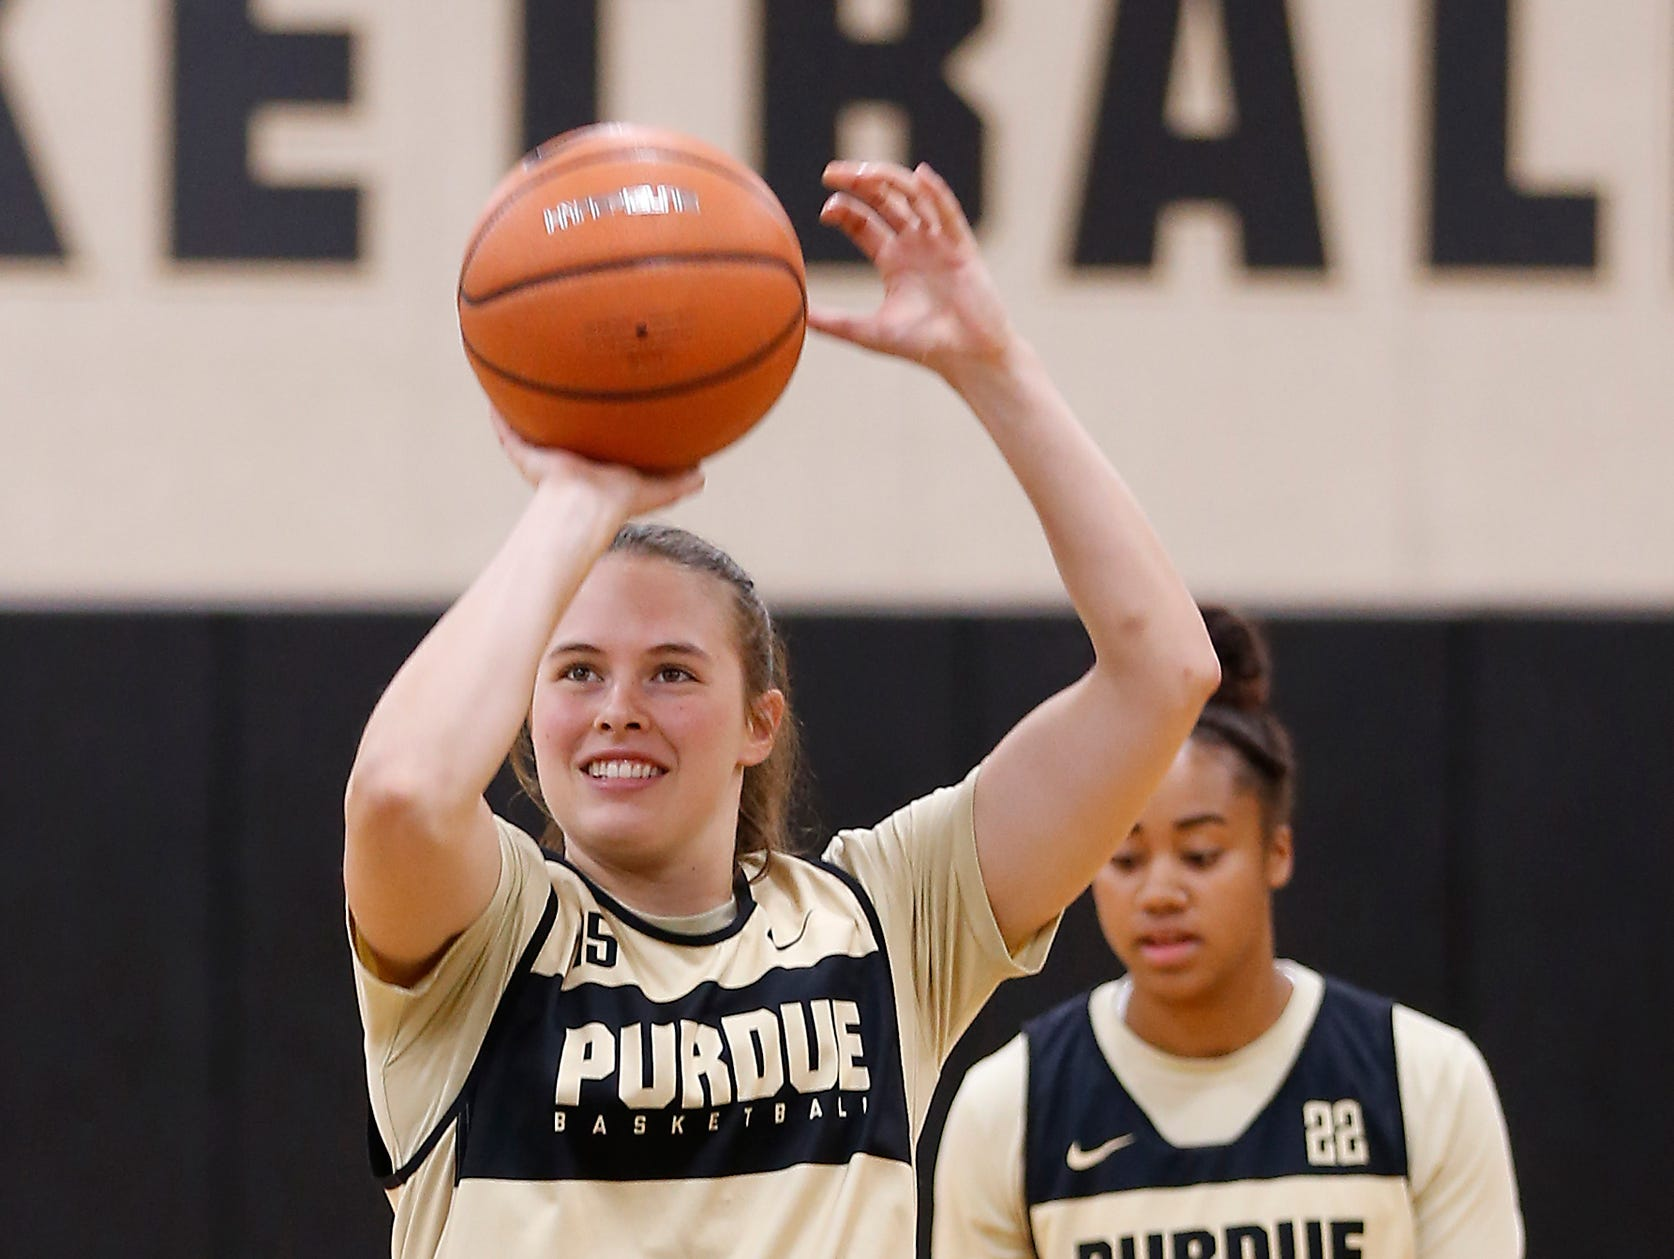 Léony Bourdreau takes a shot as she warms up before the start of the practice for Purdue women's basketball Wednesday, September 26, 2018, at Cardinal Court in Mackey Arena.